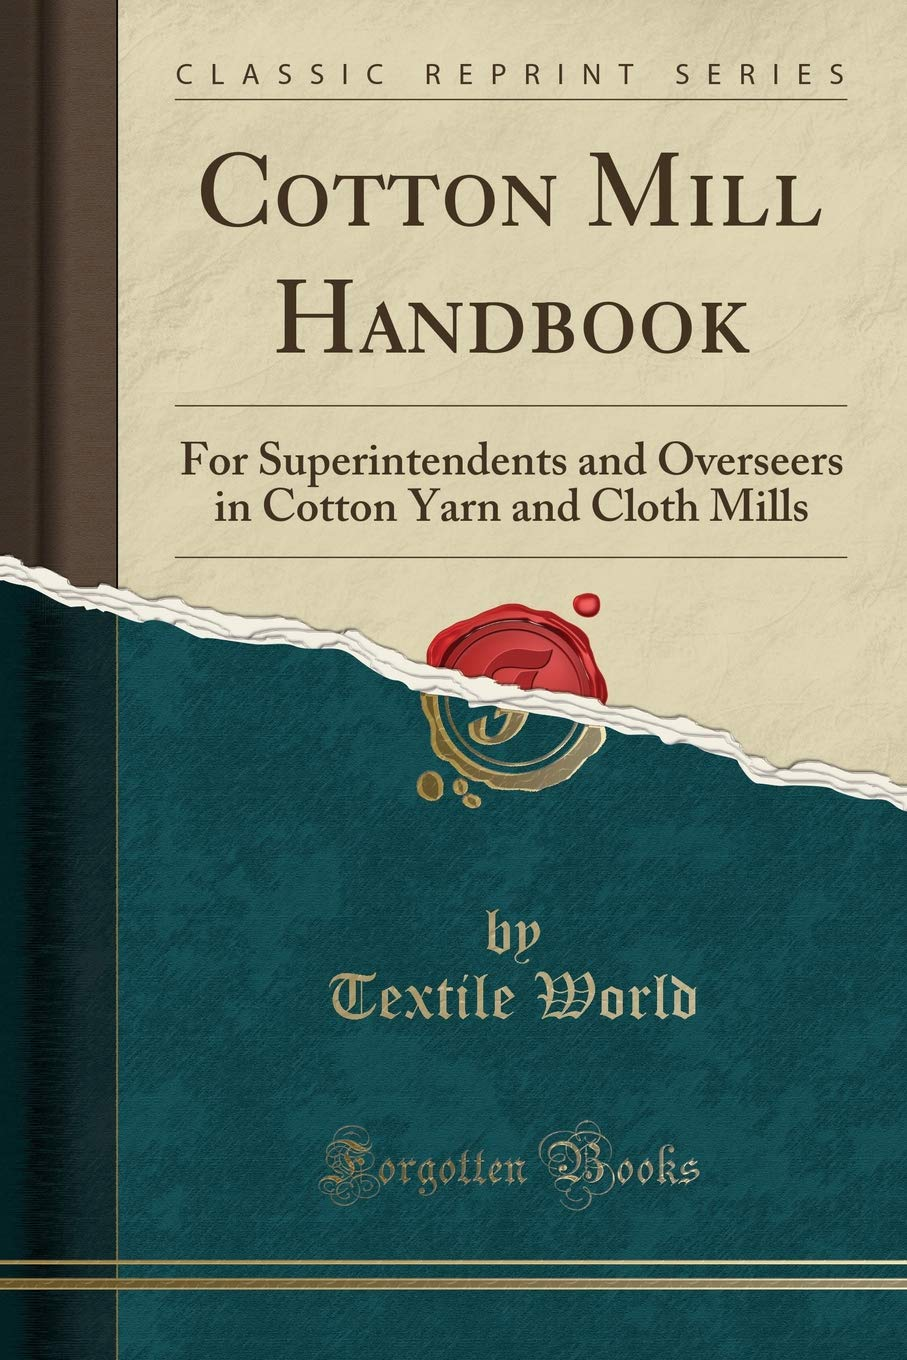 Cotton Mill Handbook: For Superintendents and Overseers in